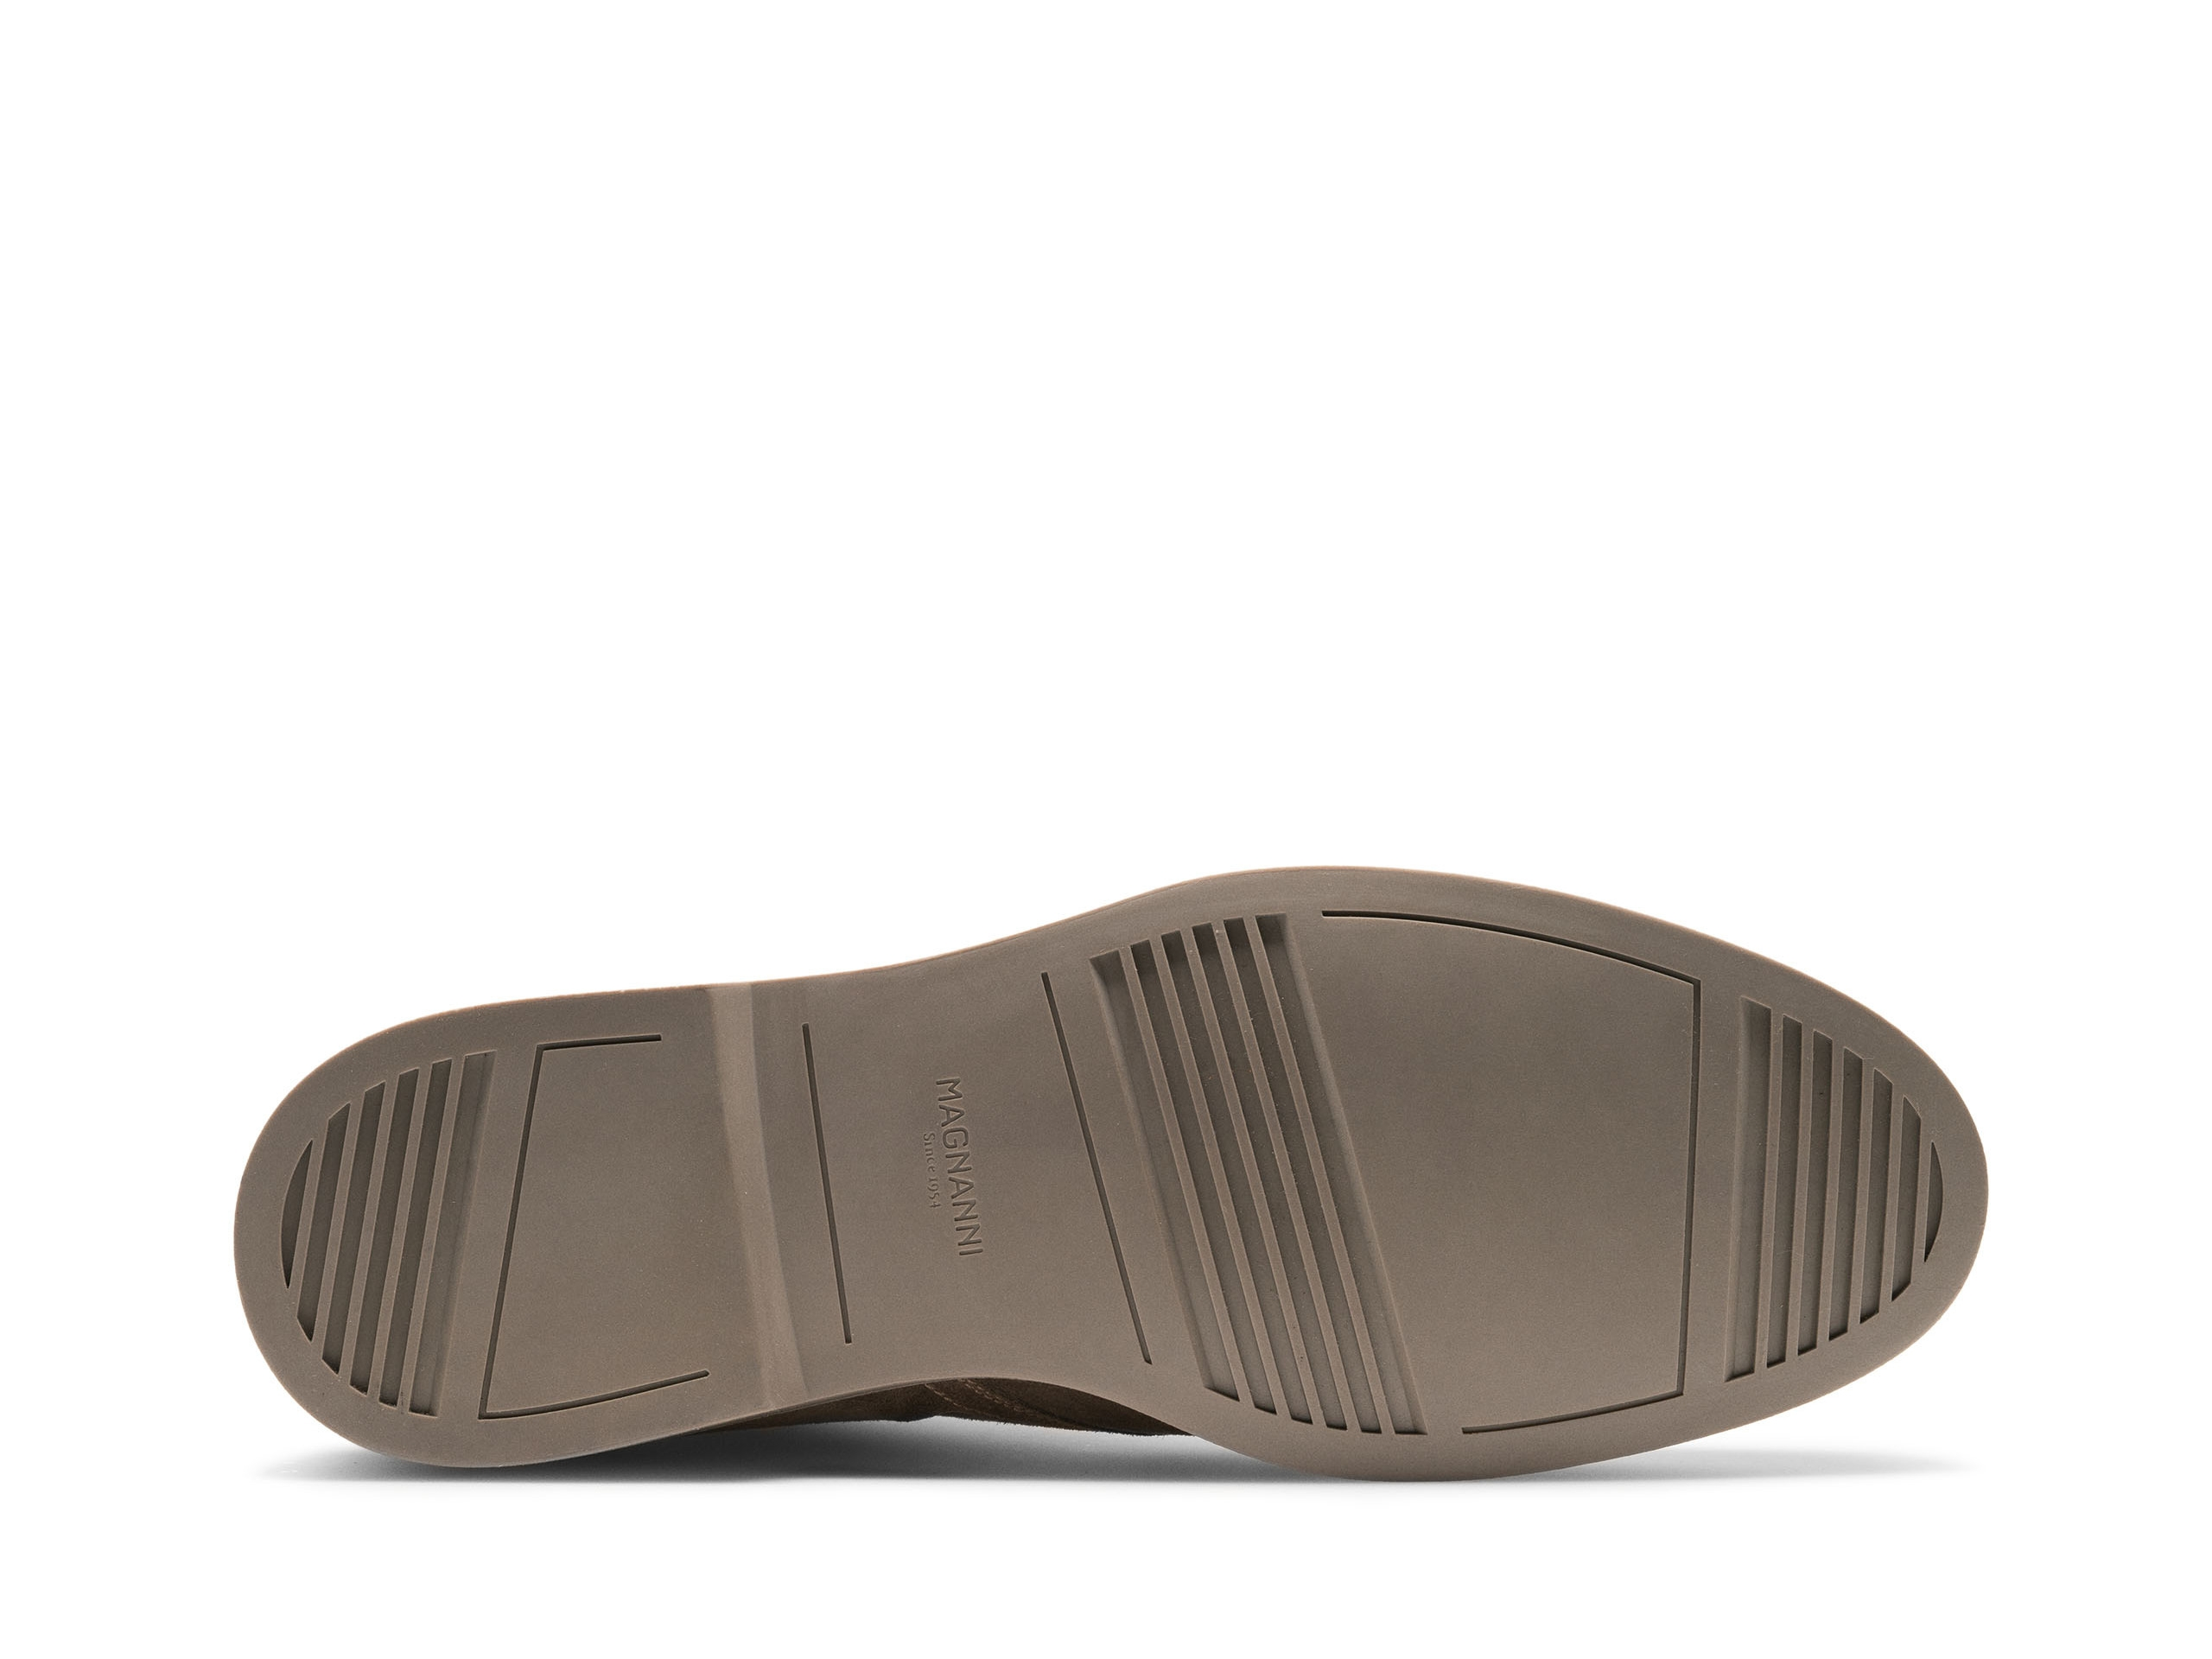 Sole of the Duran Taupe Suede